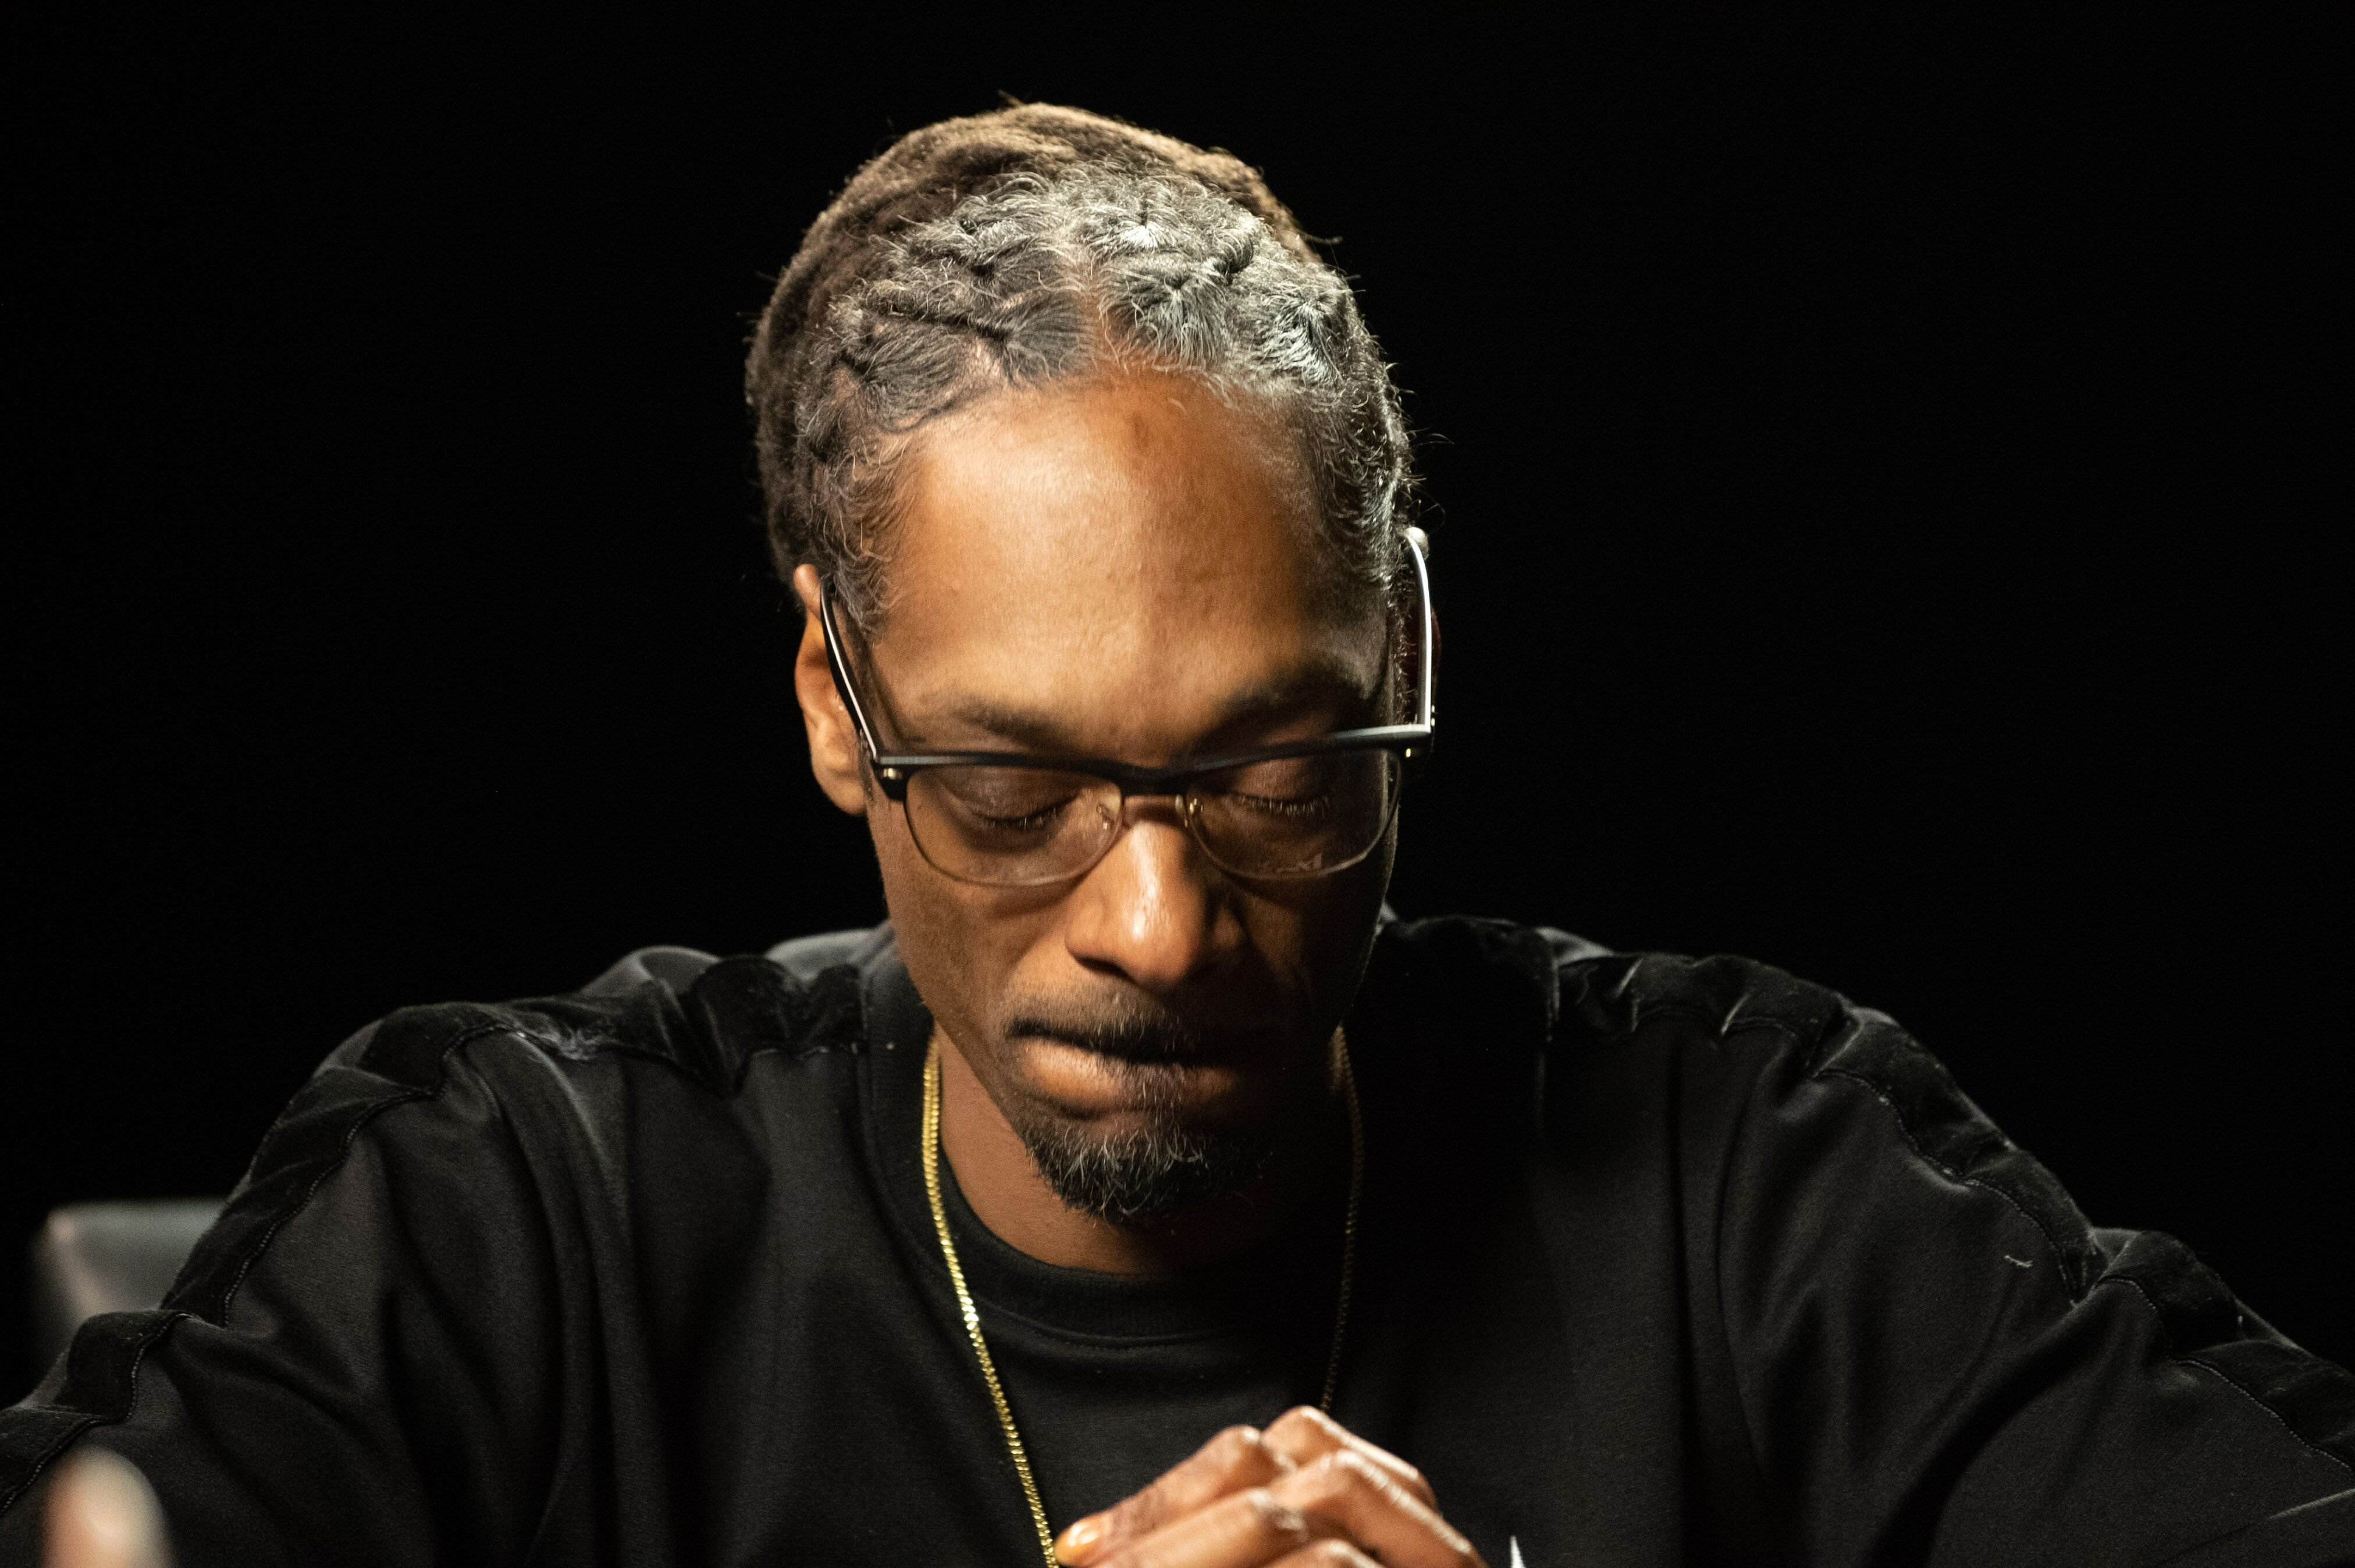 Rapper Snoop Dogg/ Source: Getty Images